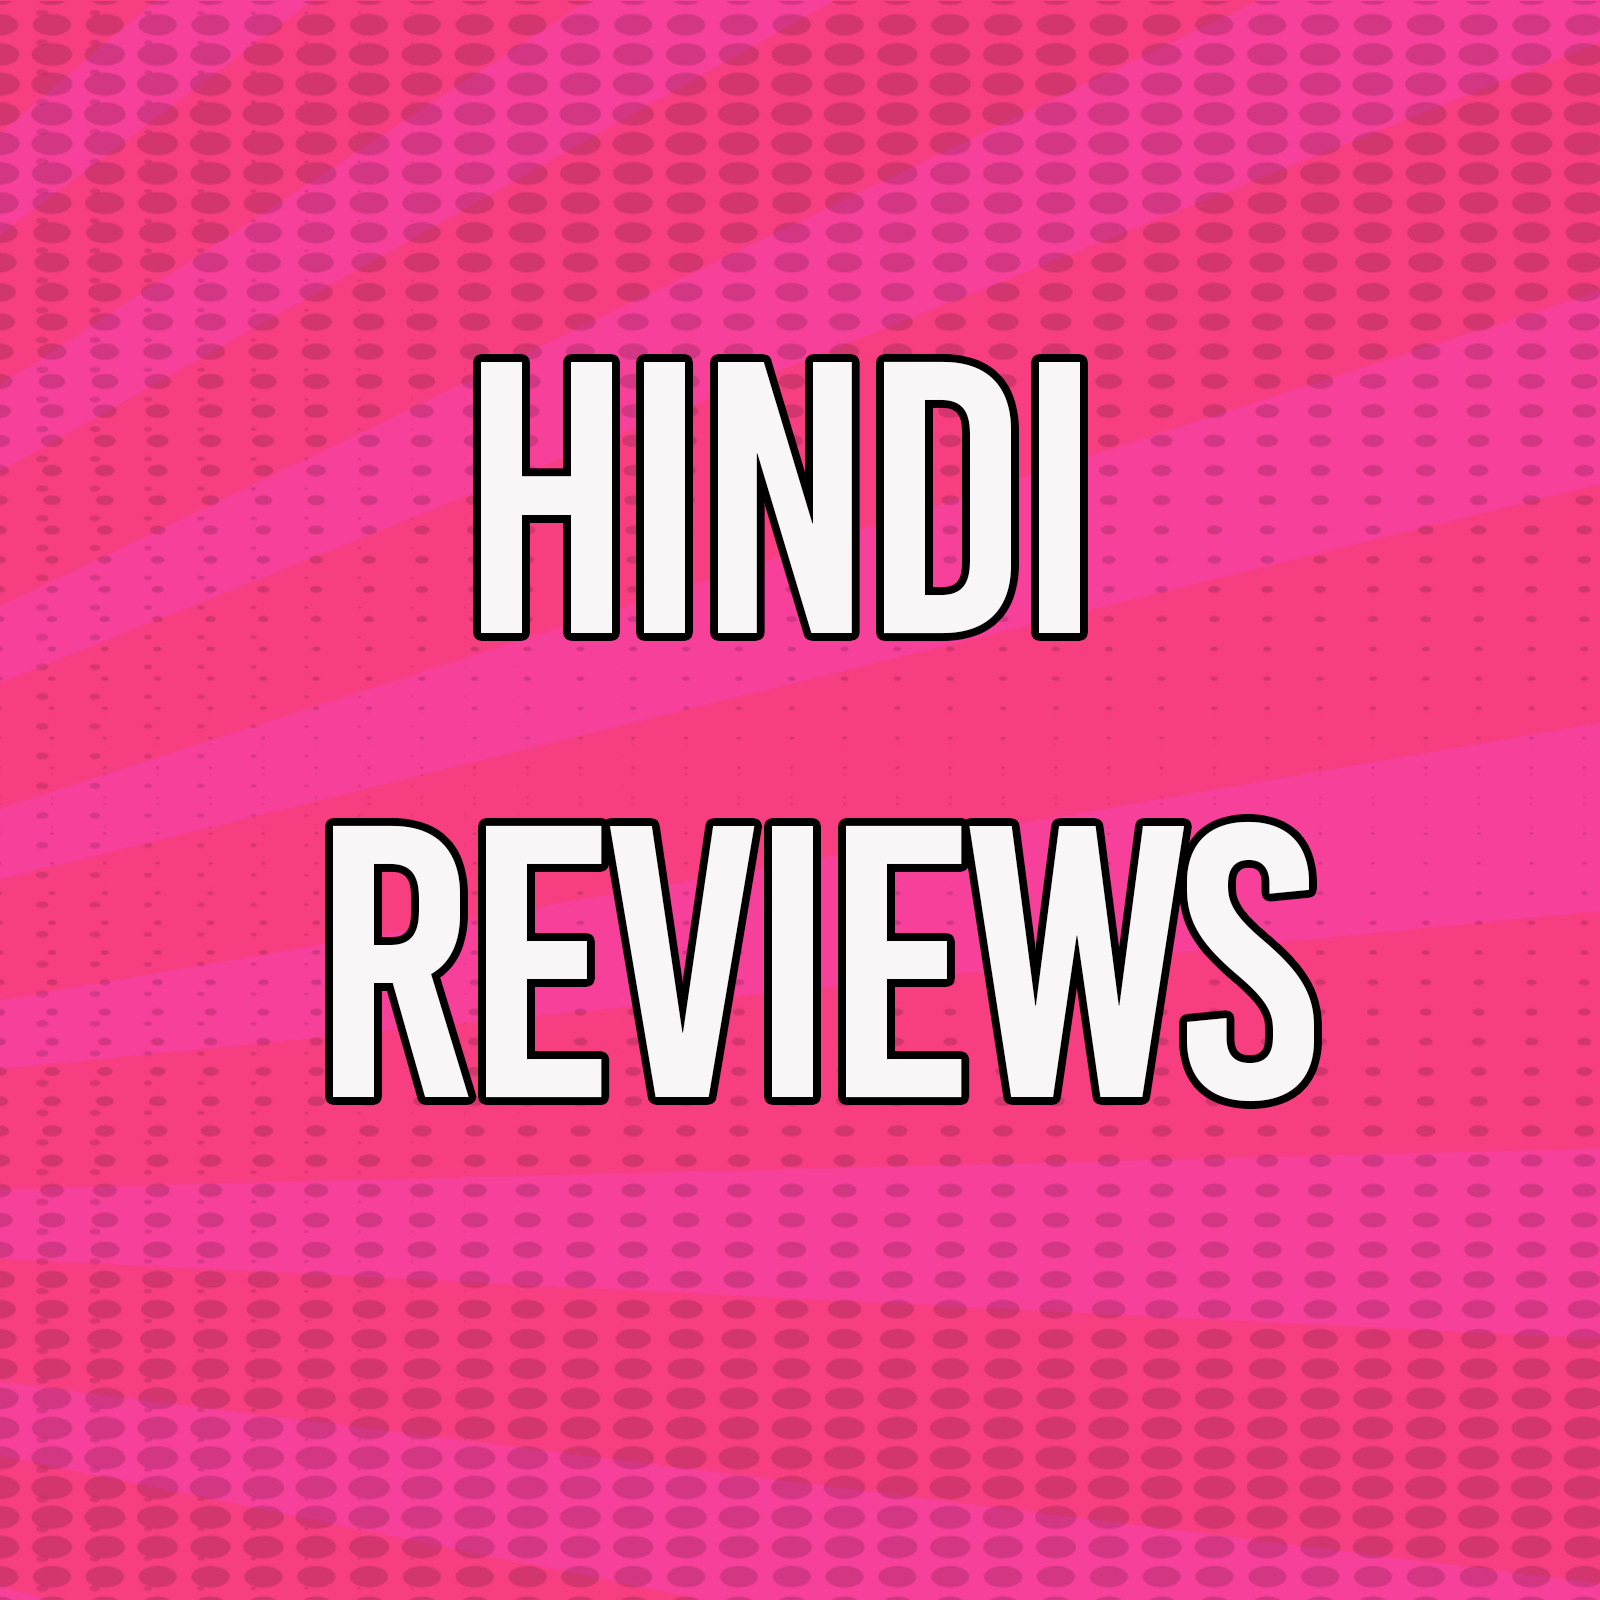 hindi reviews.png